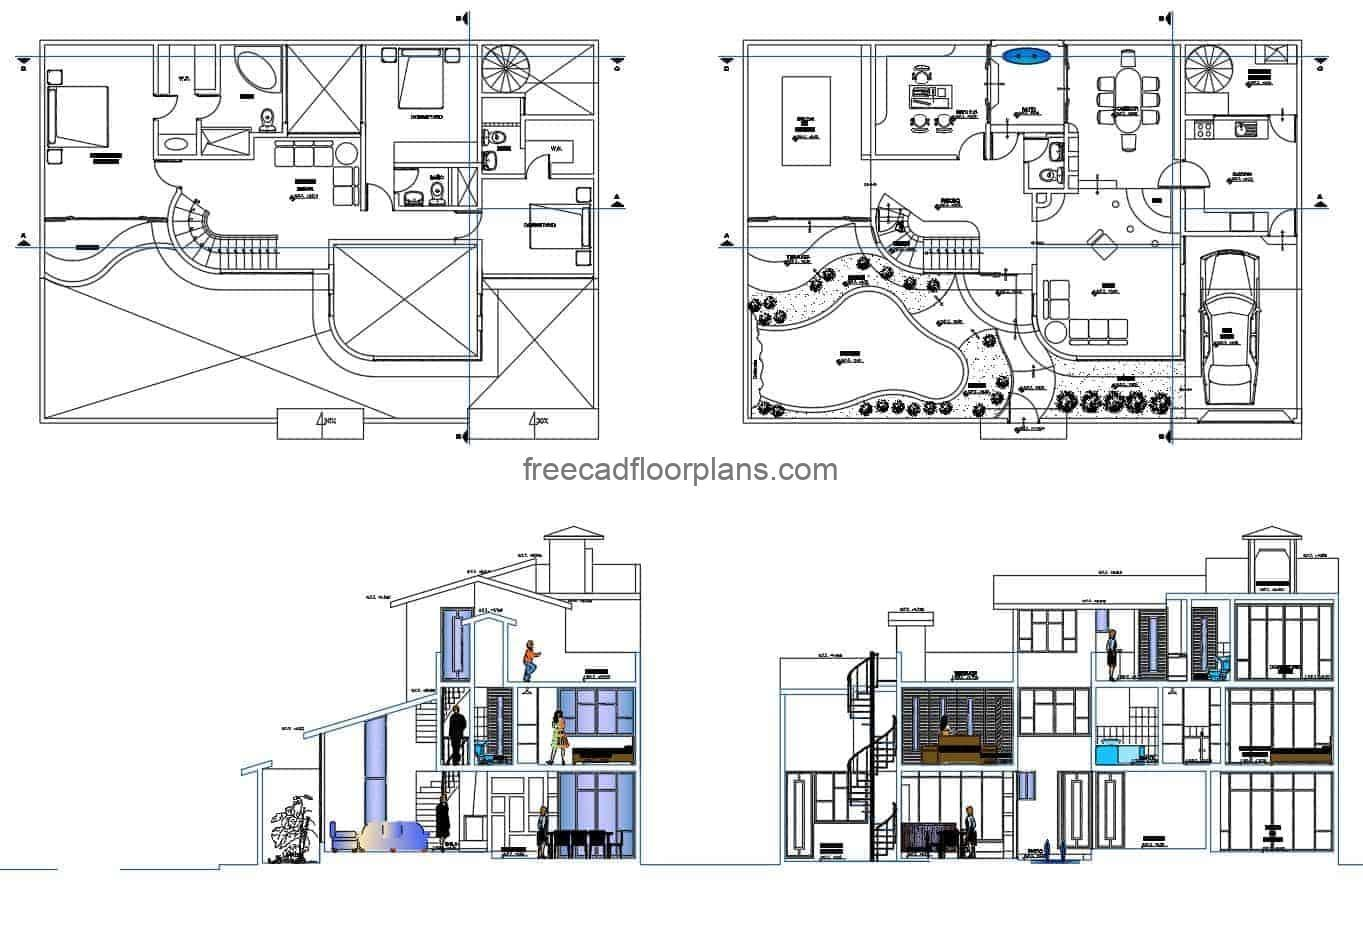 Architectural project in DWG format of a modern three-storey residence, architectural floor plan for space distribution, detail plan with sections and interior elevations, blocks in DWG for free download